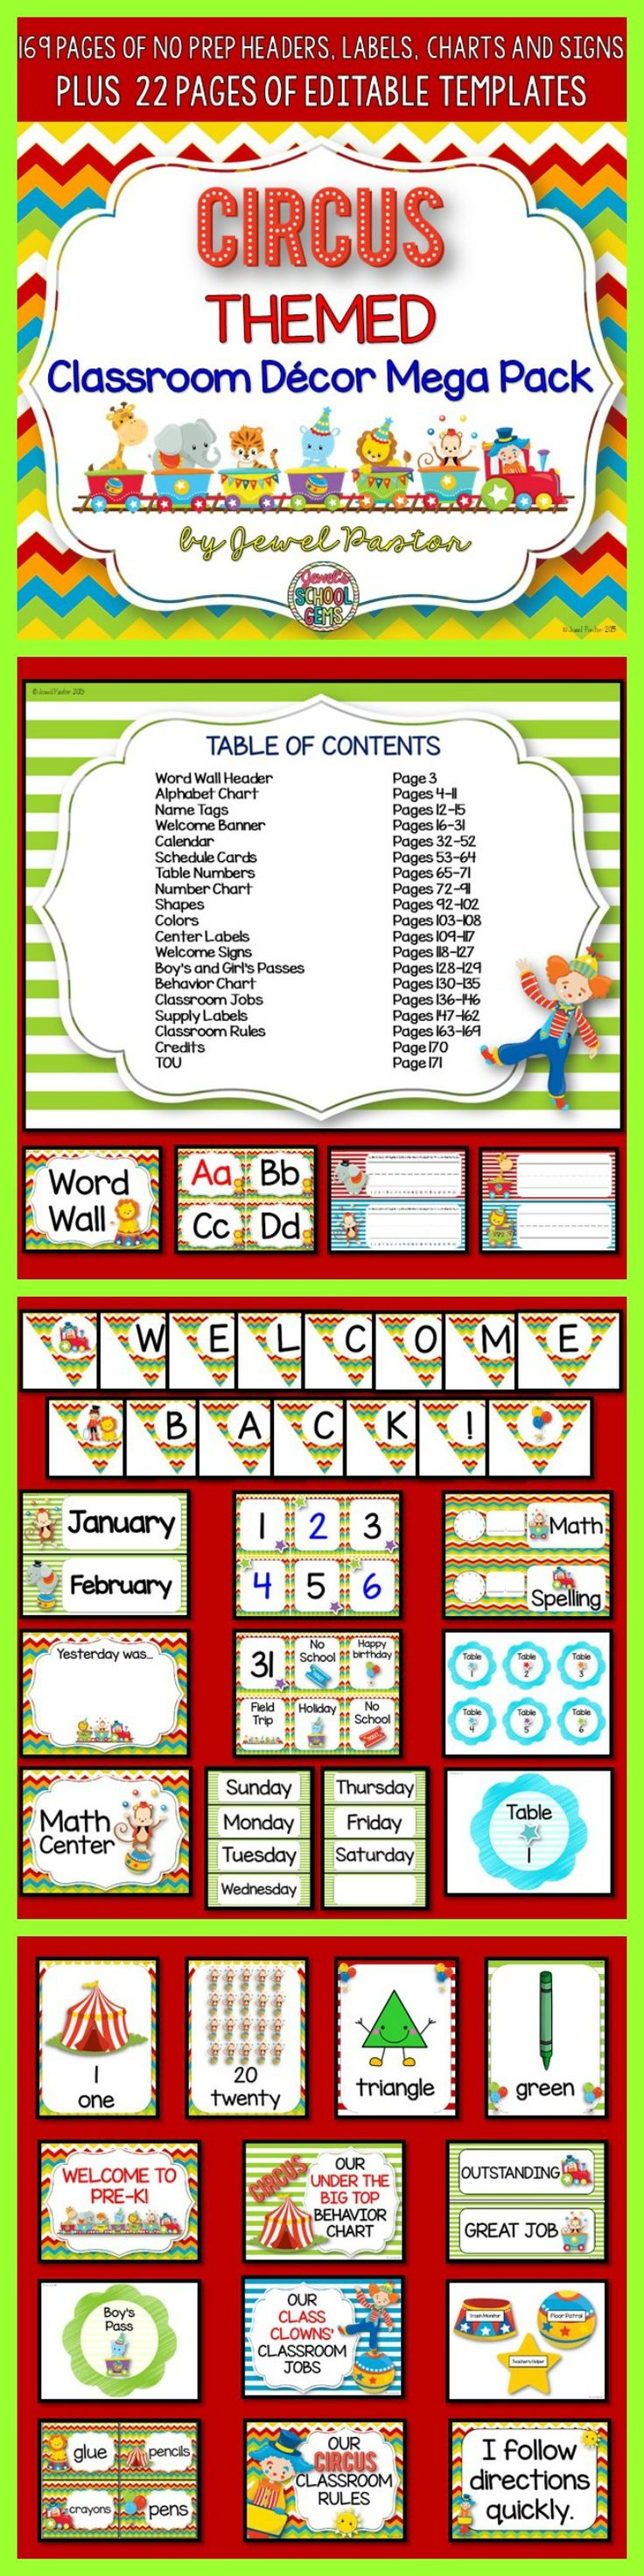 Circus Theme : Circus Theme  Bring your class under the big top with this Circus Themed Classroom Decor Mega Pack. This resource comes with 169 pages of NO PREP HEADERS, LABELS, CHARTS AND SIGNS plus 22 pages of EDITABLE PARTS/TEMPLATES.